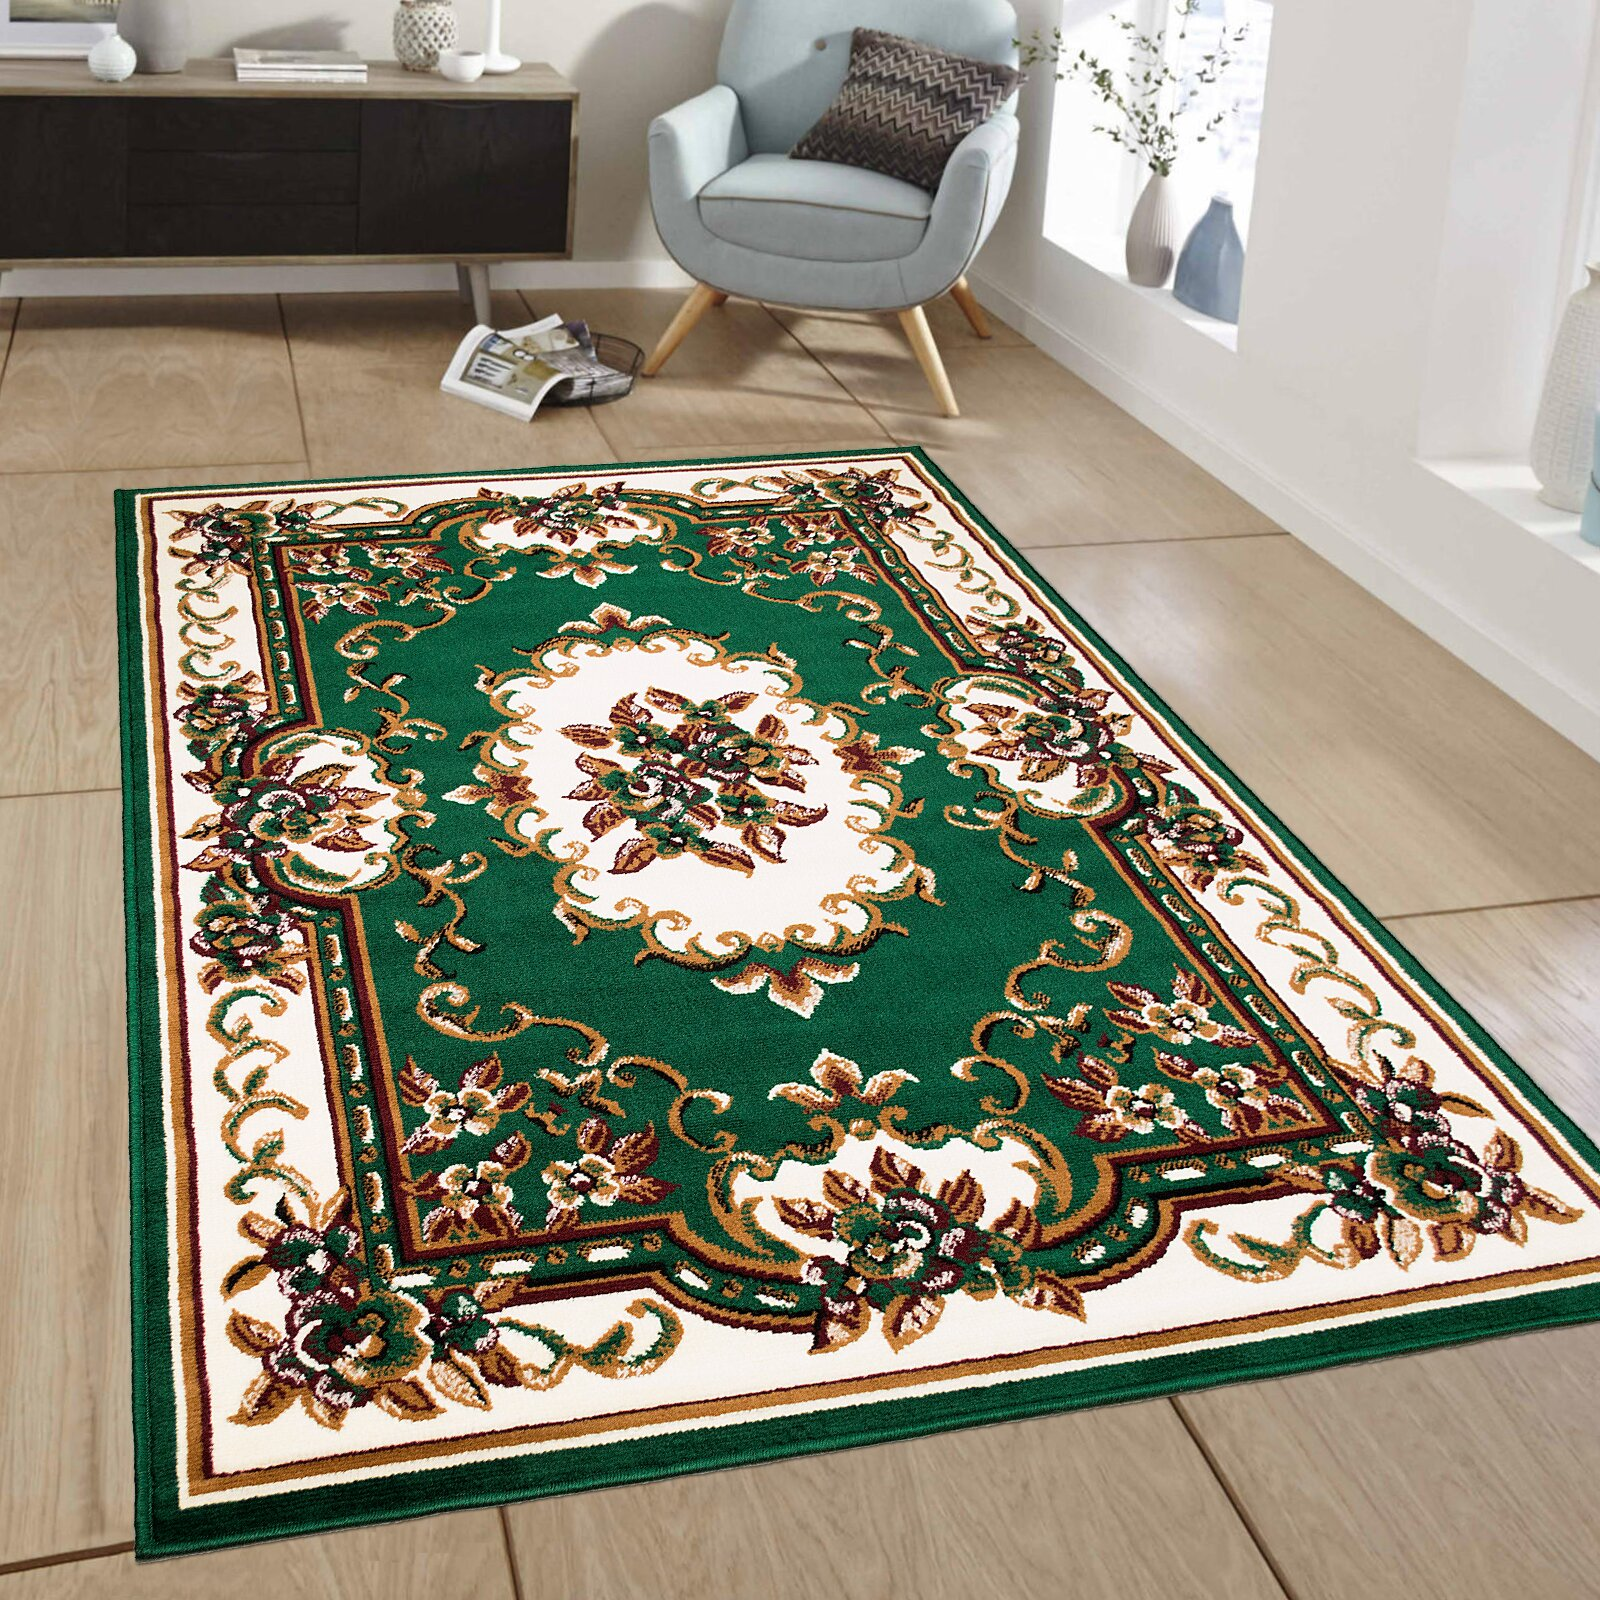 AllStar Rugs Green Area Rug & Reviews